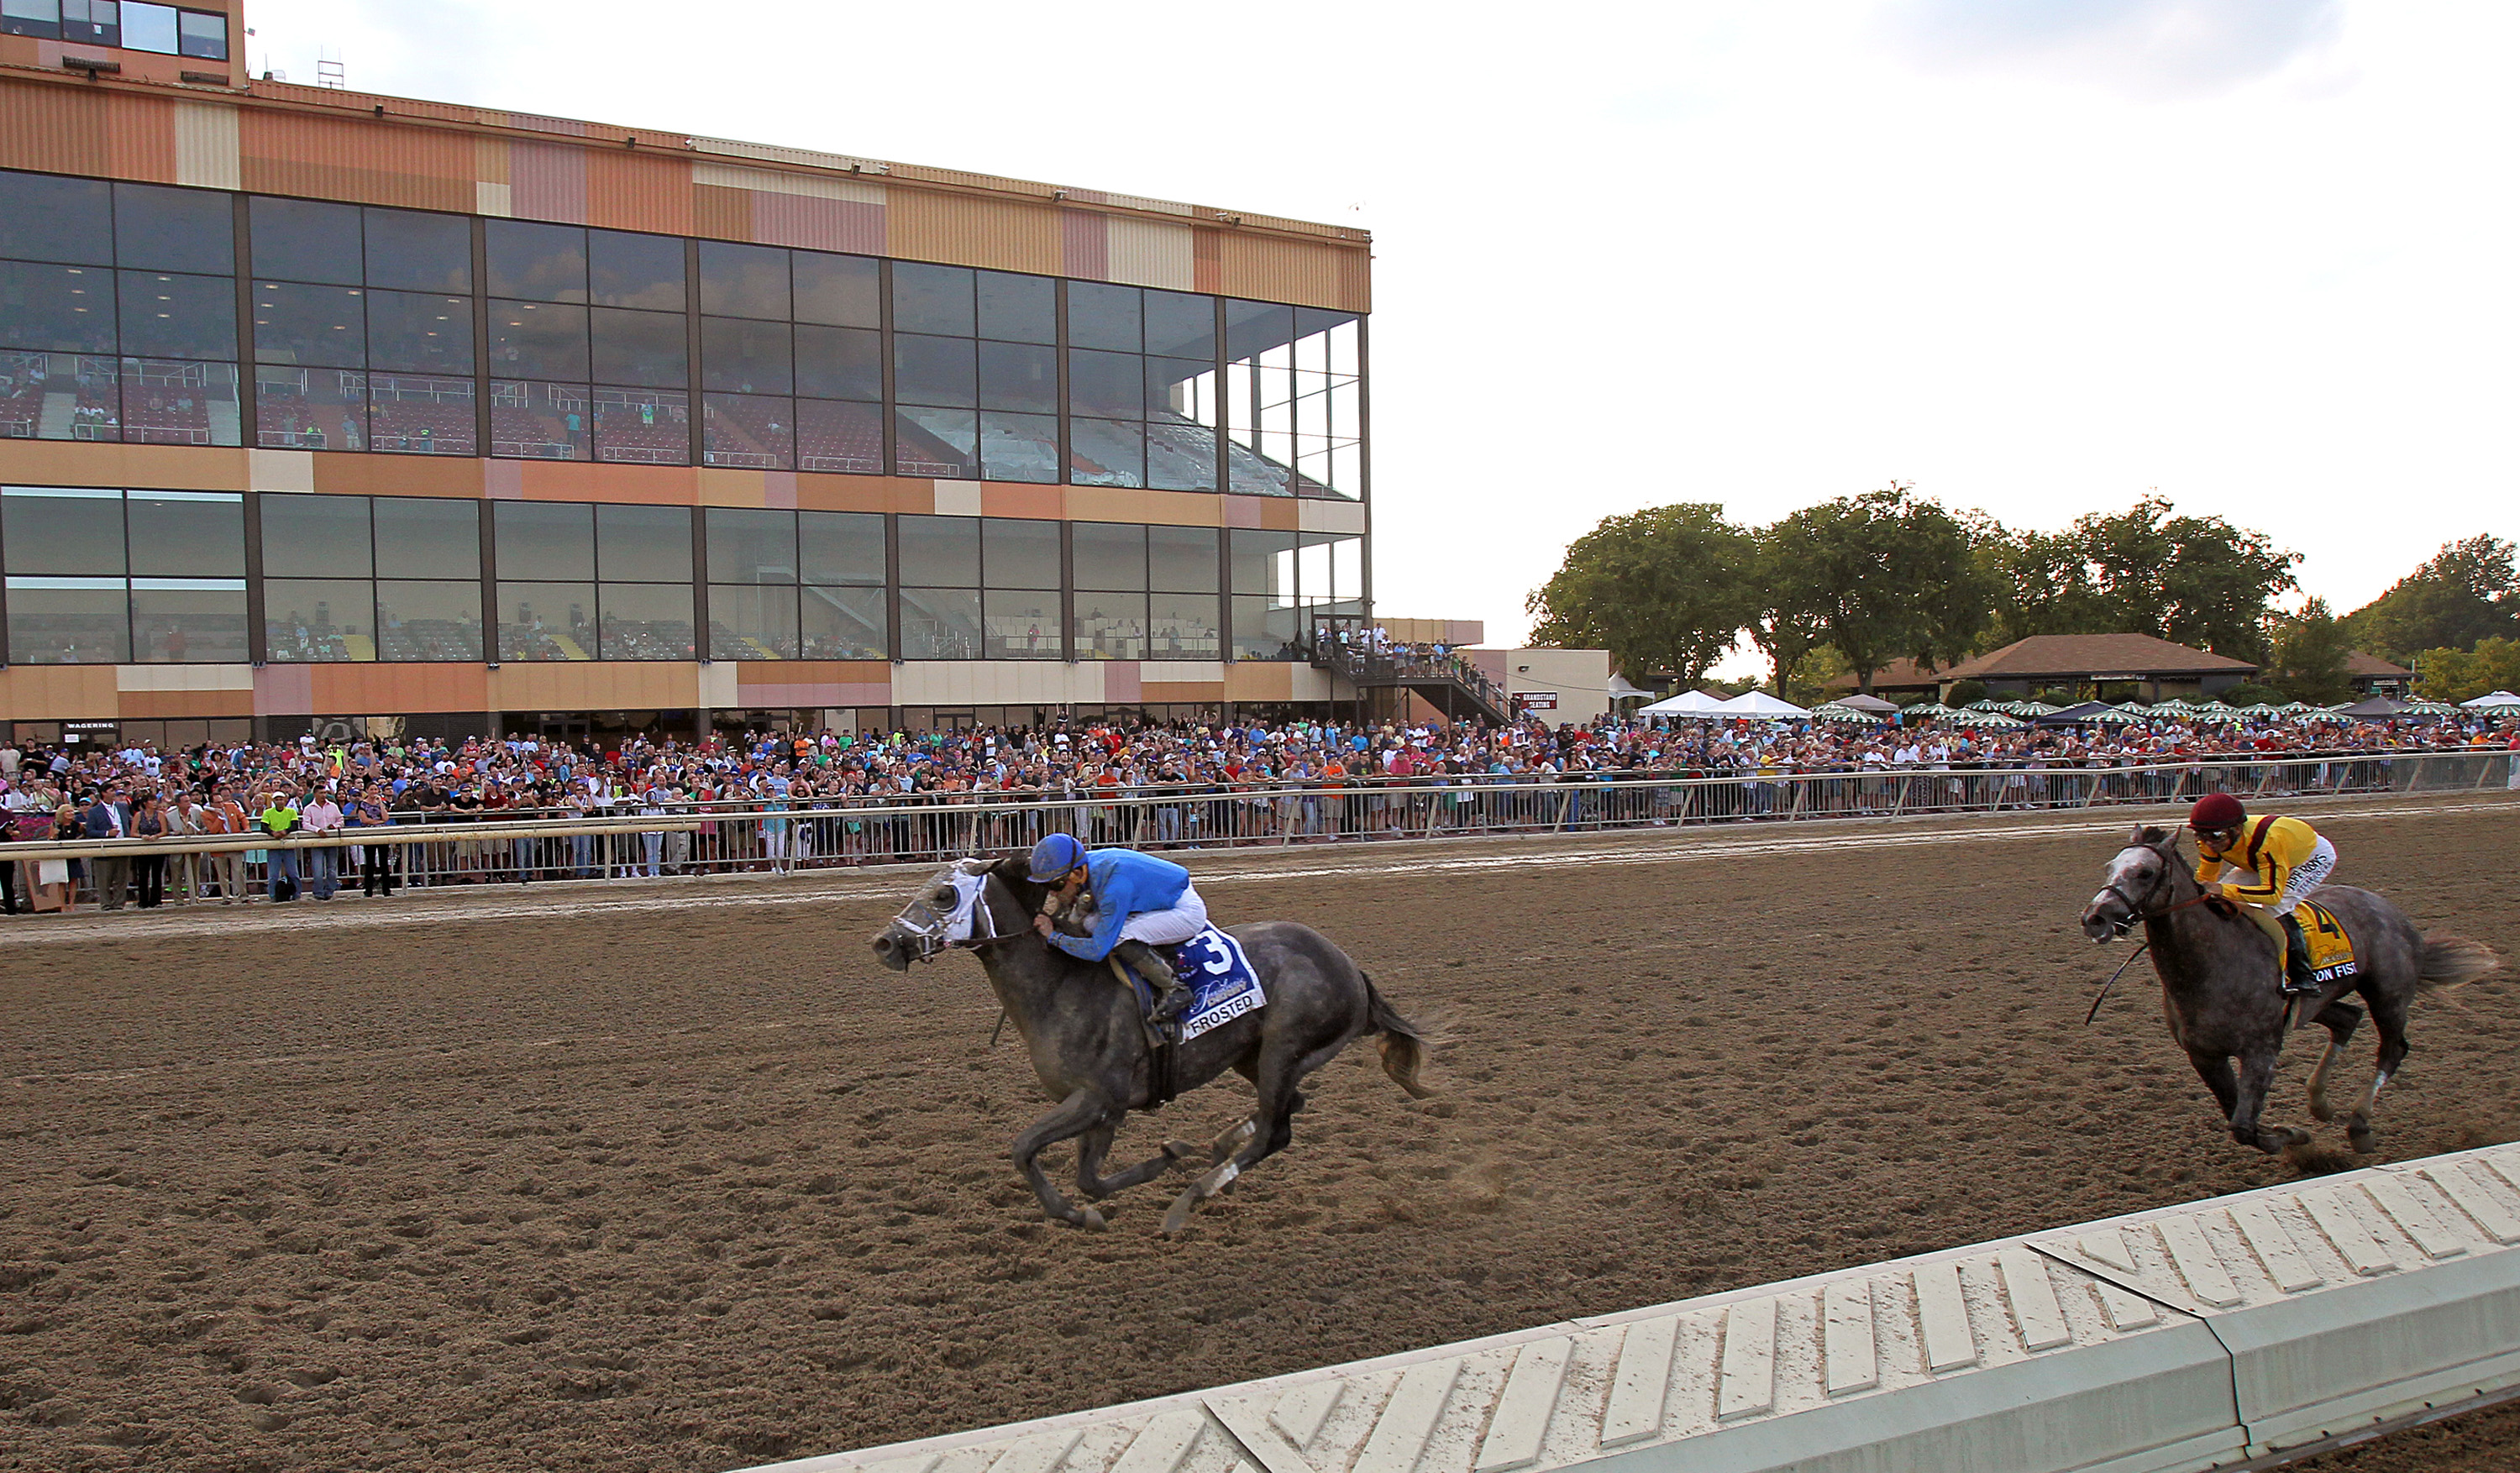 In a photo provided by Equi=Photo, Frosted, left, with Joel Rosario riding, wins the $1 million Pennsylvania Derby horse race at Parx Racing in Bensalem, Pa., on Saturday, Sept, 19, 2015. Iron Fist, right, with Mike Smith, was second. (Bill Denver/Equi-Ph